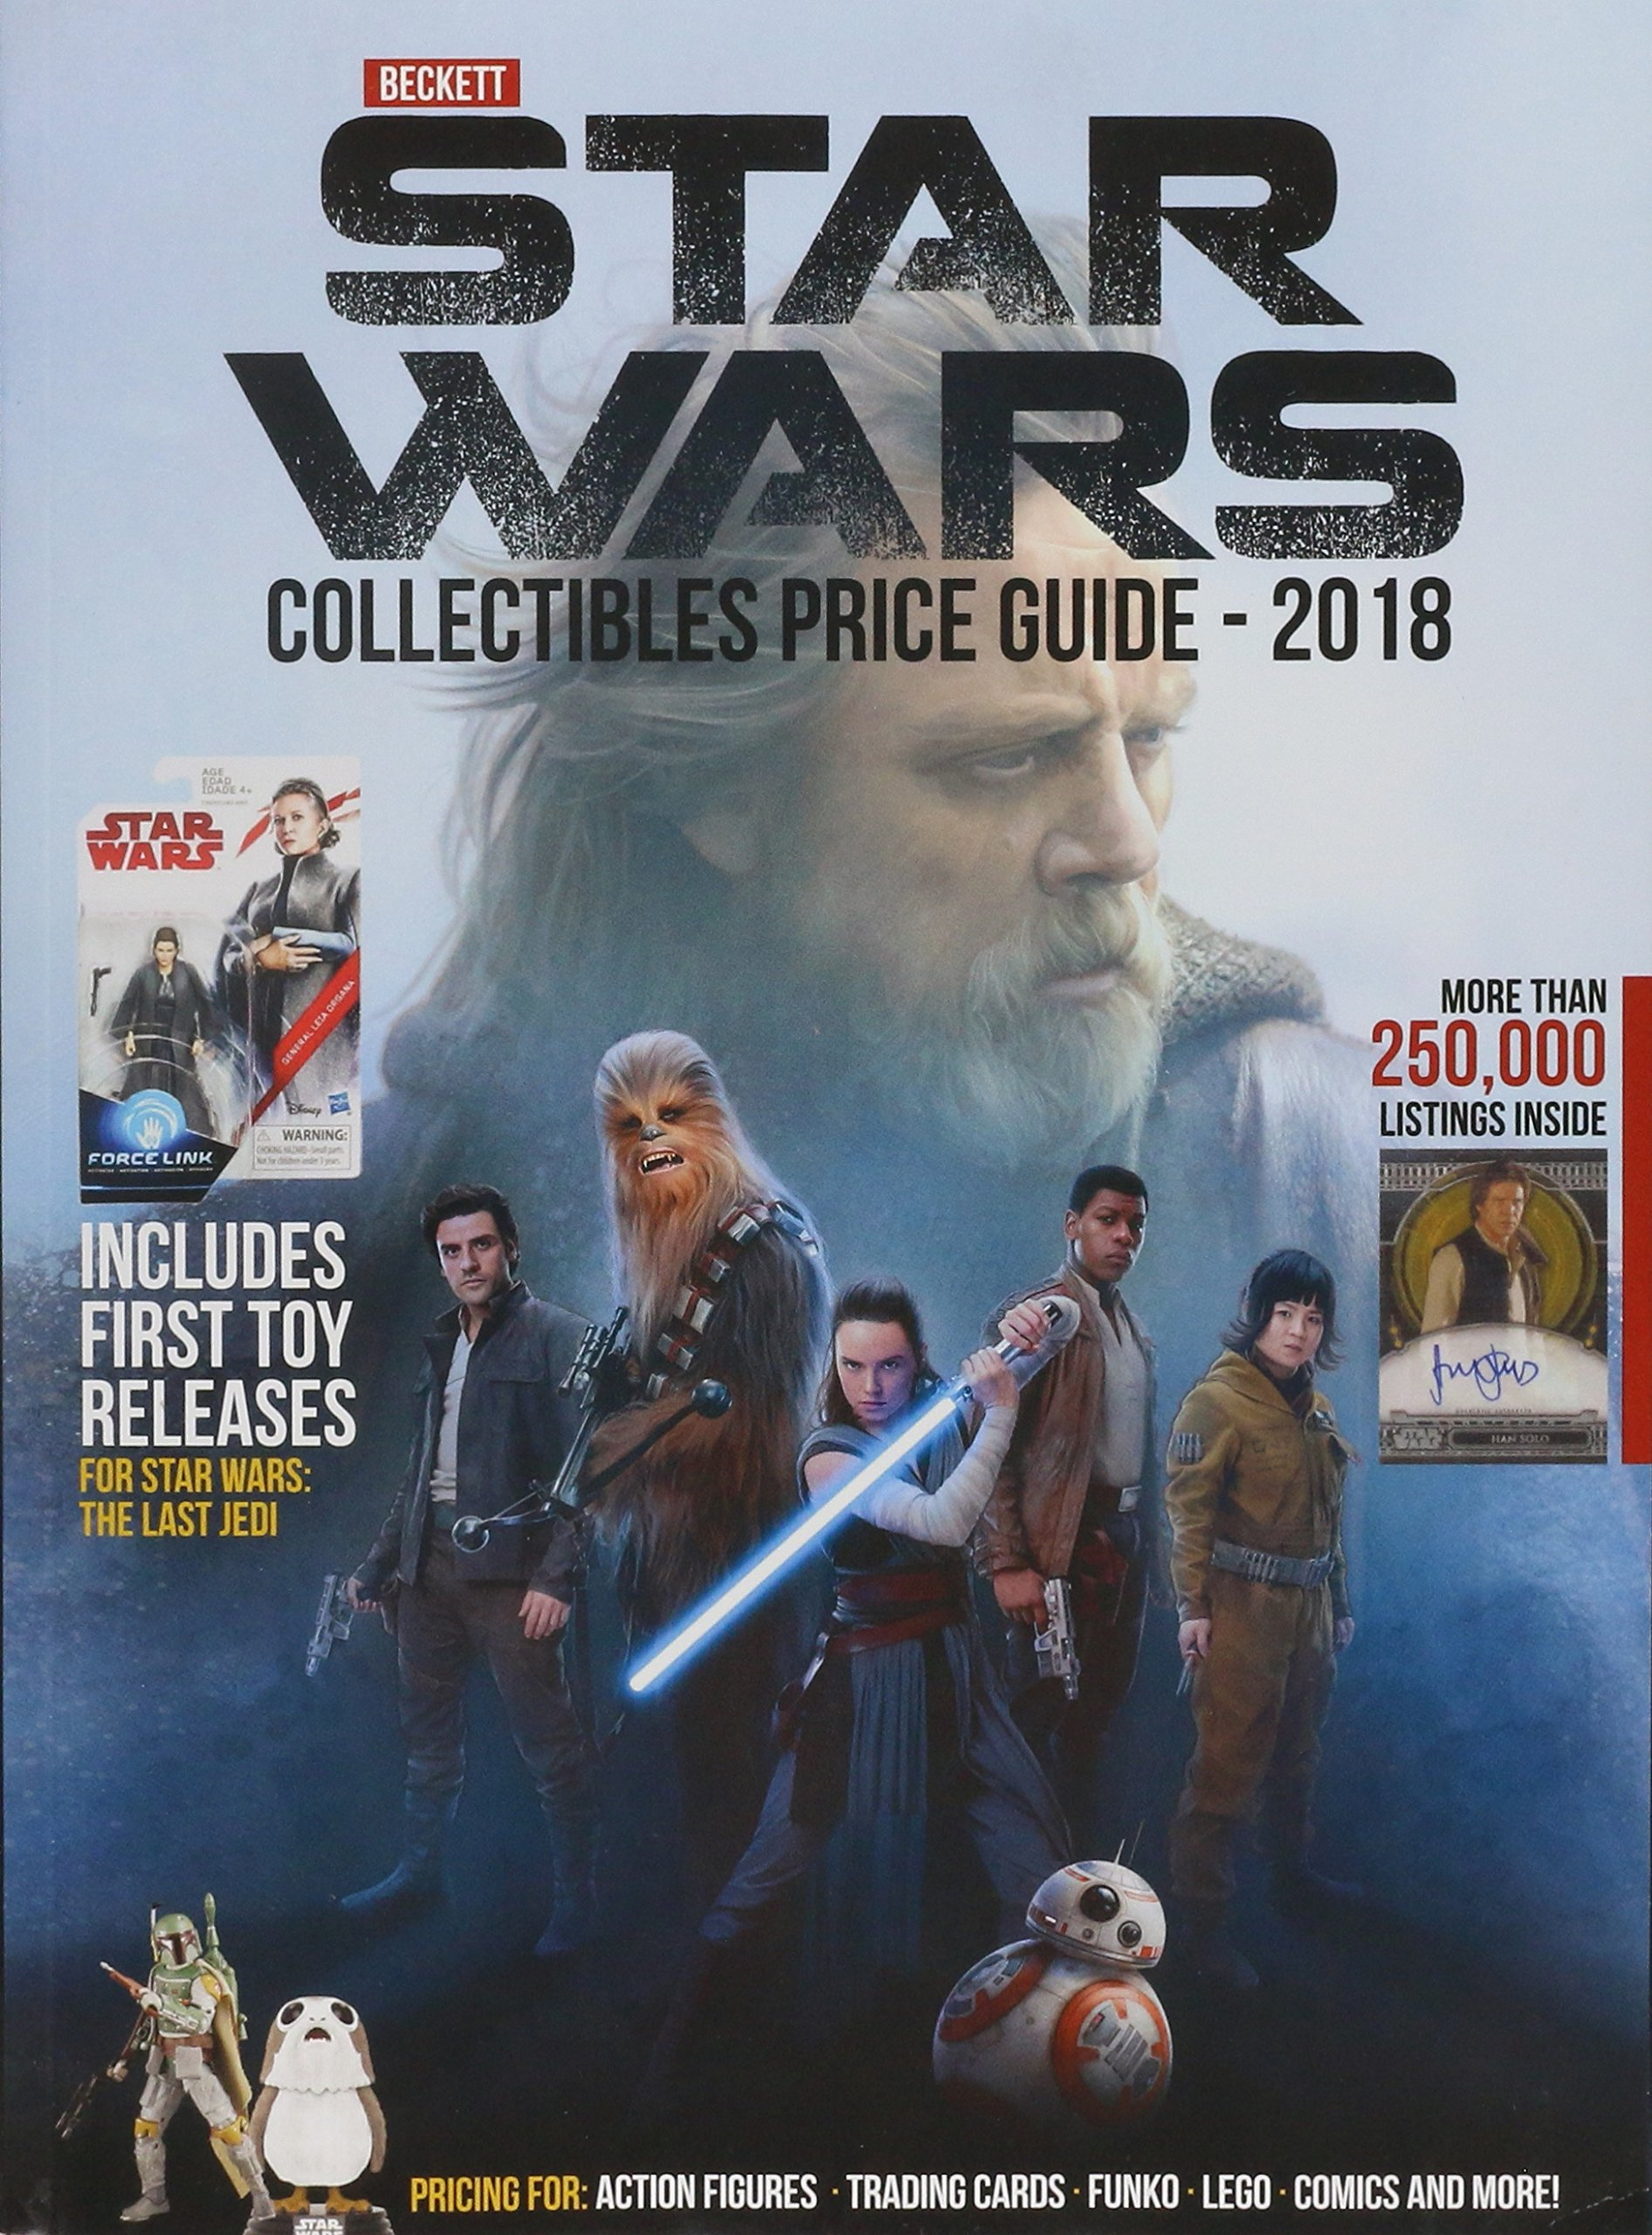 Beckett's Star Wars Collectibles Price Guide 2018